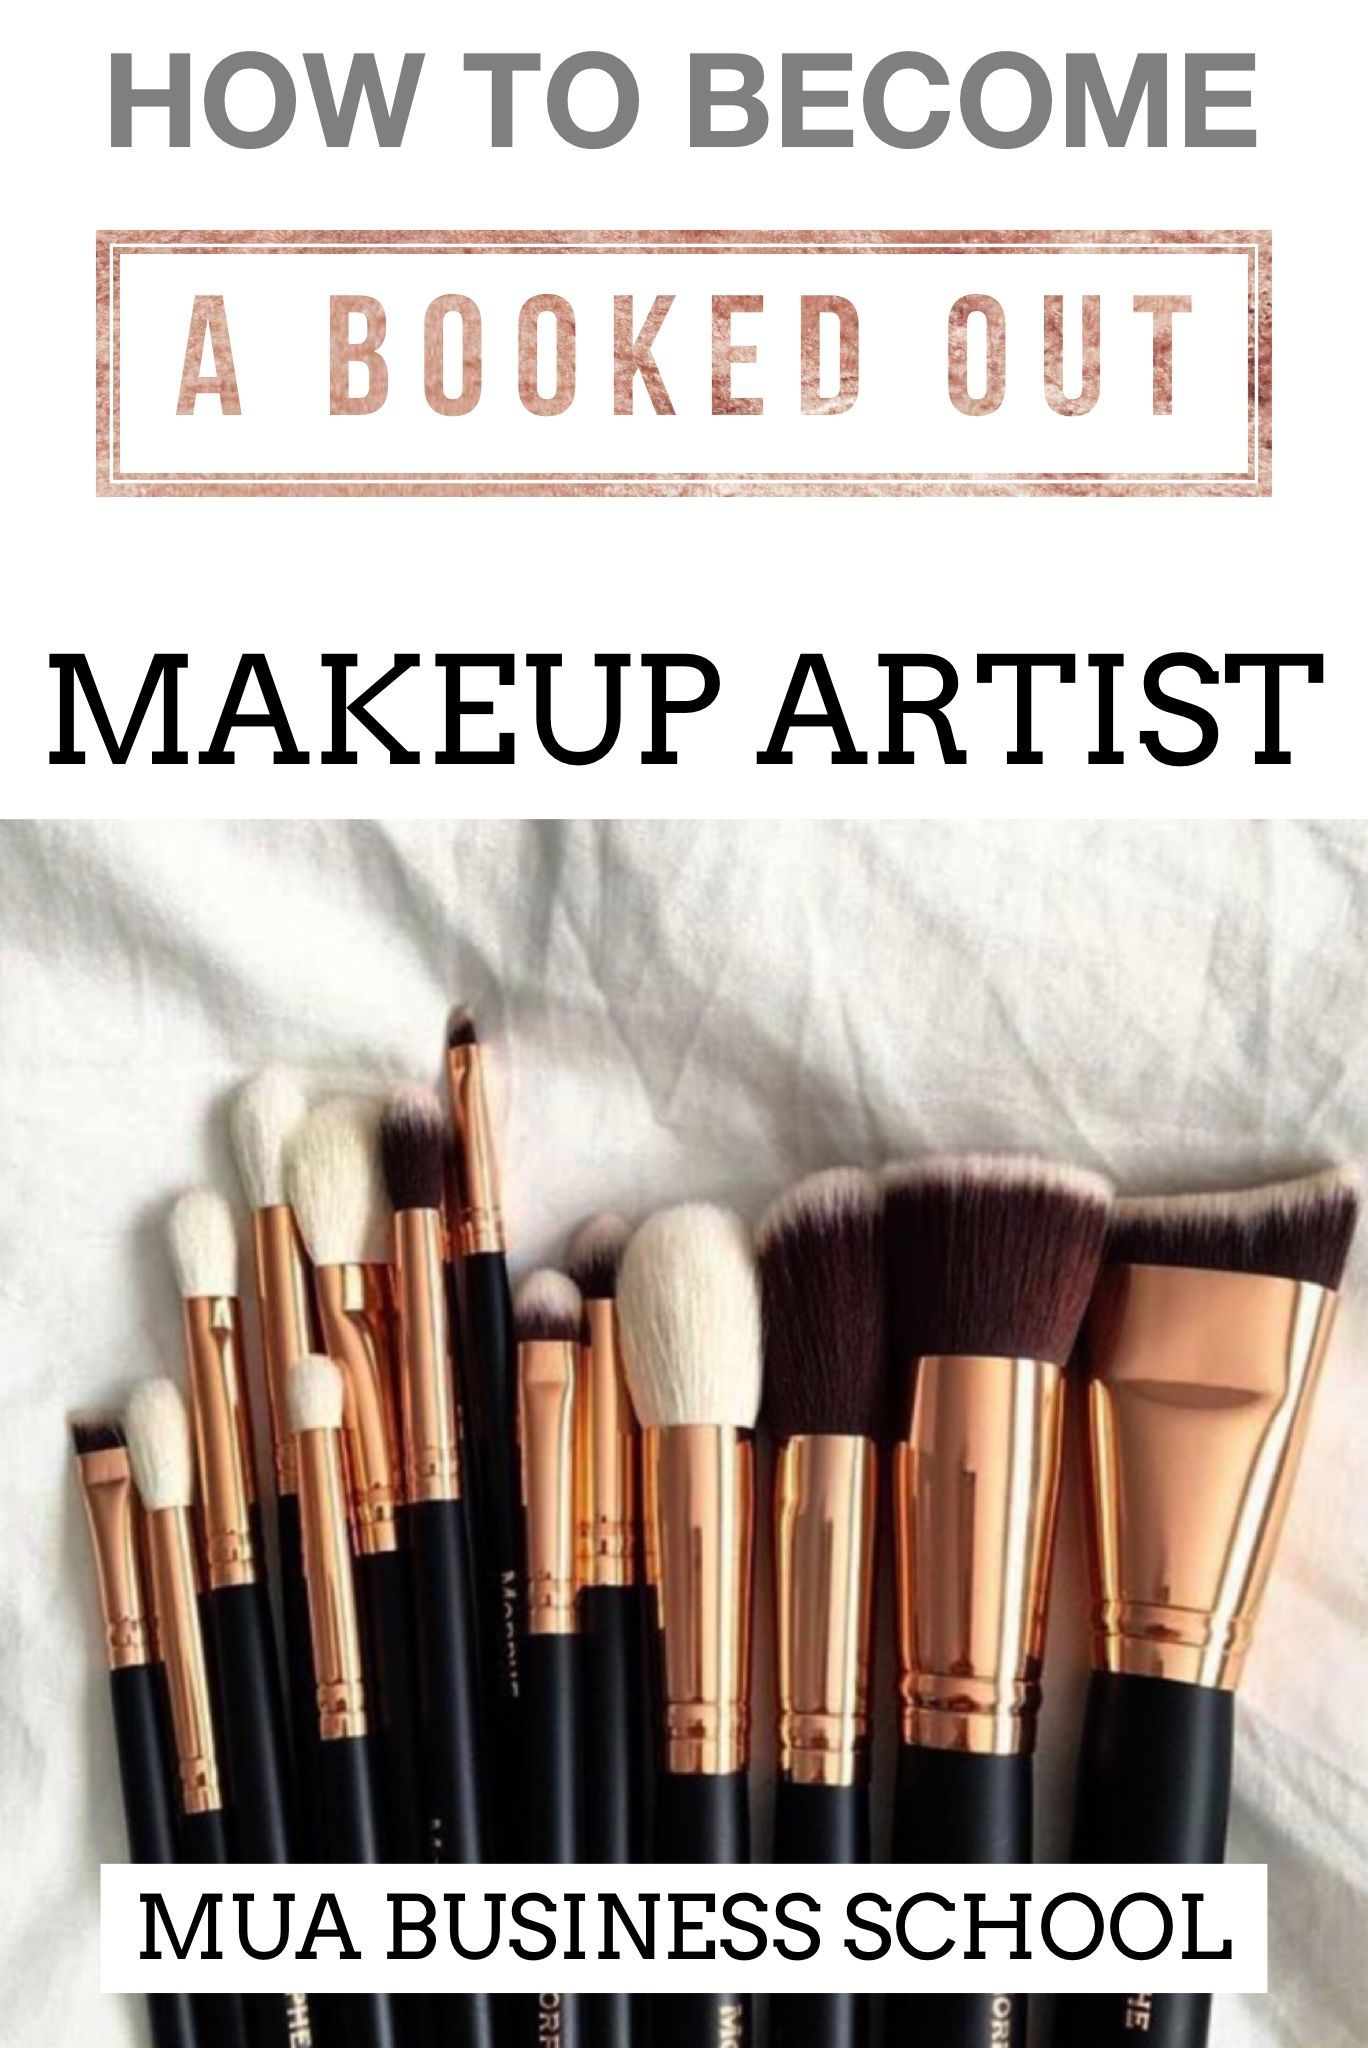 How To Be A Booked Out Makeup Artist FREE GUIDE Build Your